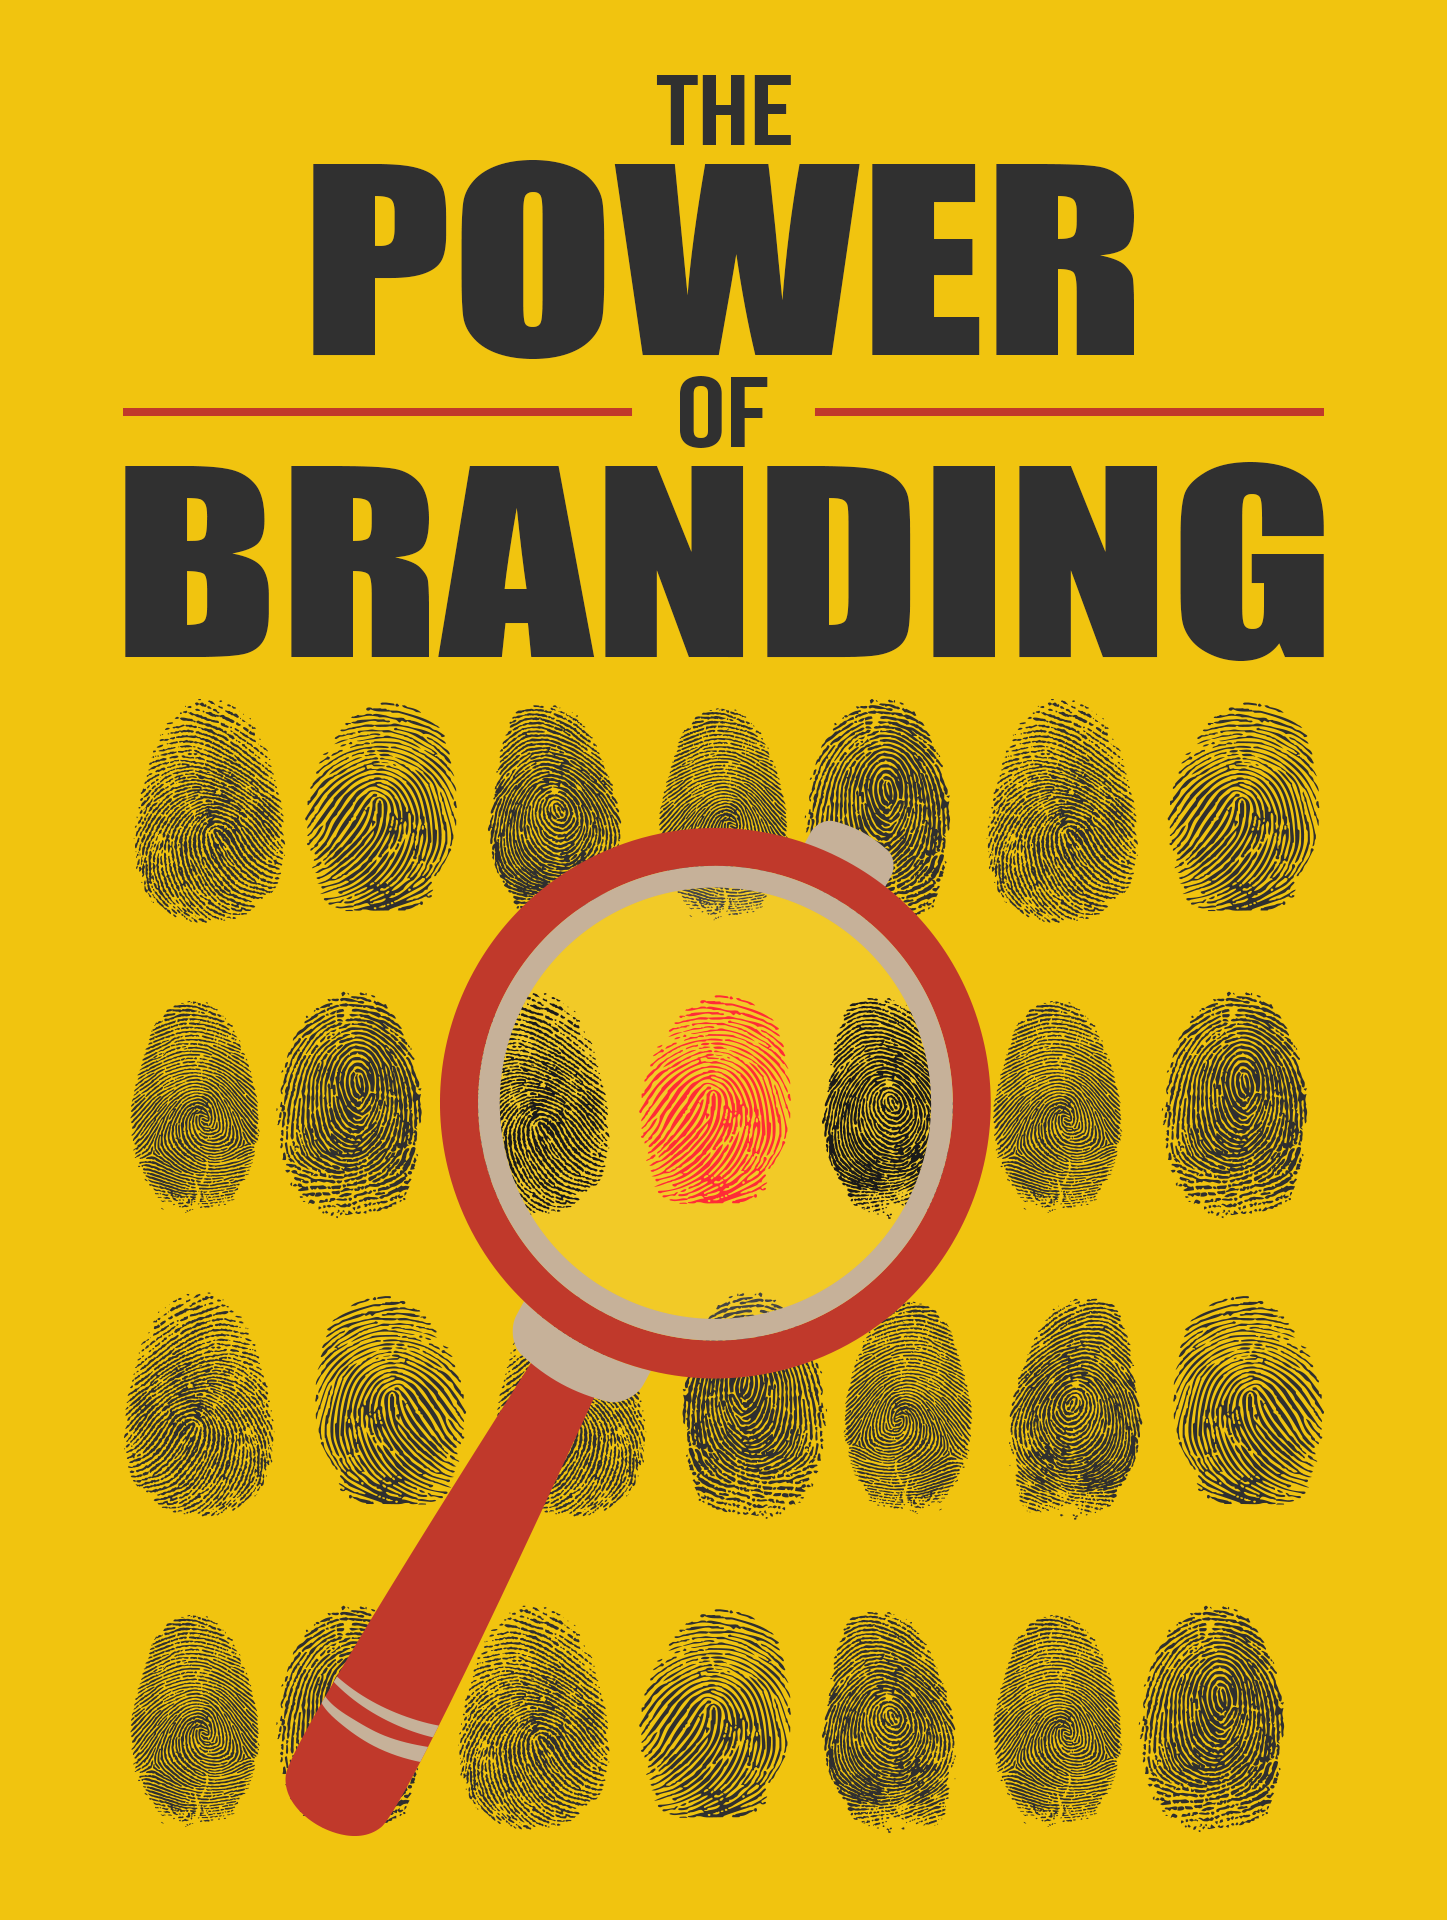 the power of branding essay The importance of branding to an organisation essay 689 words | 3 pages the importance of branding to an organisation branding, is like setting names for products nobody would set up in business or launch a new product without giving it a name branding is a very important part of promotion.